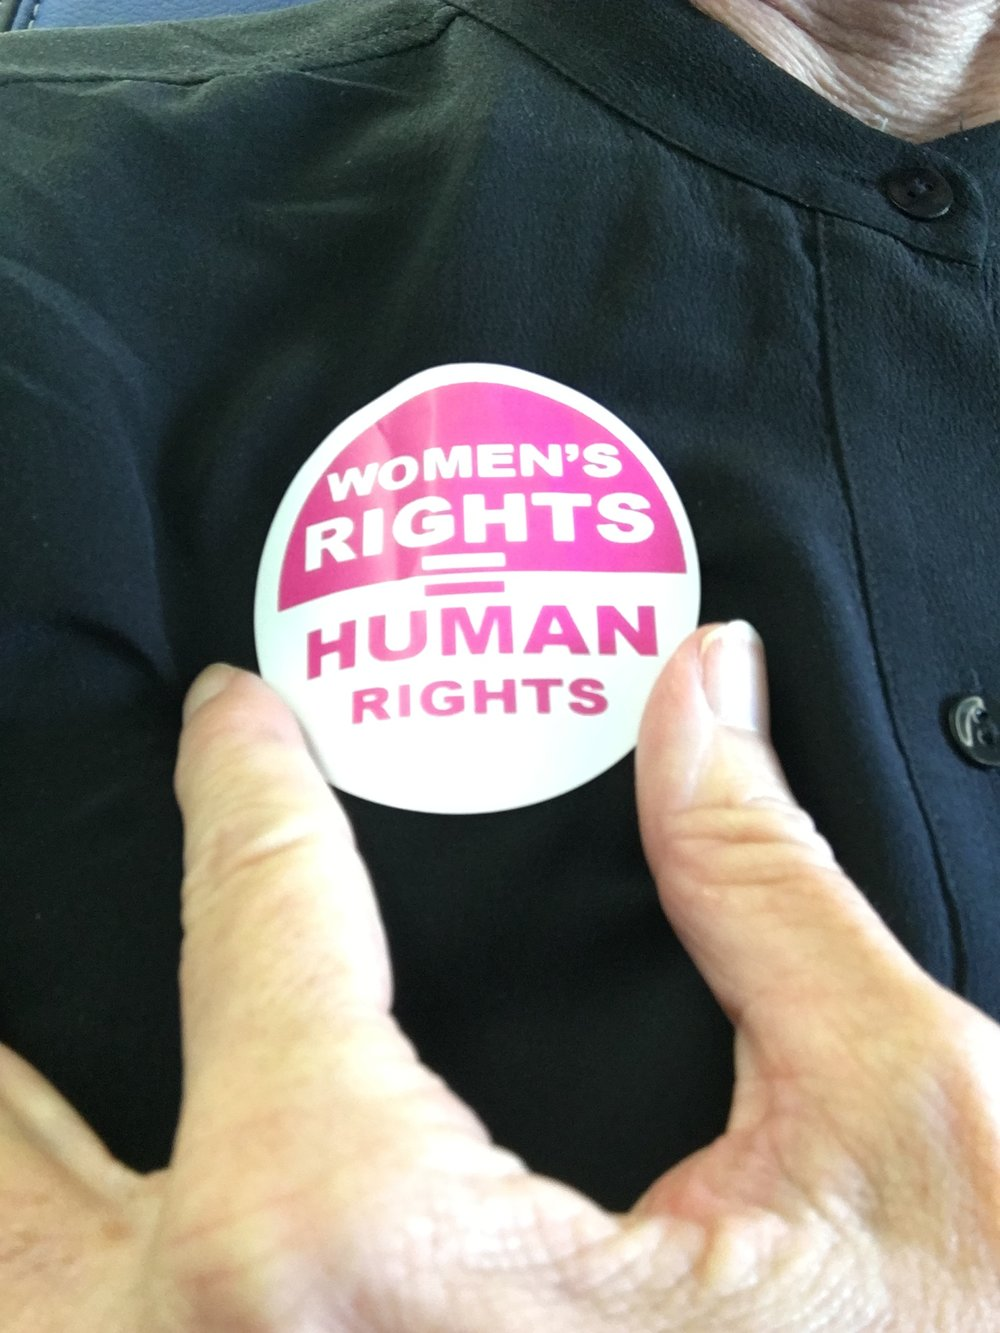 The abbot received this button from a marcher on the plane to DC